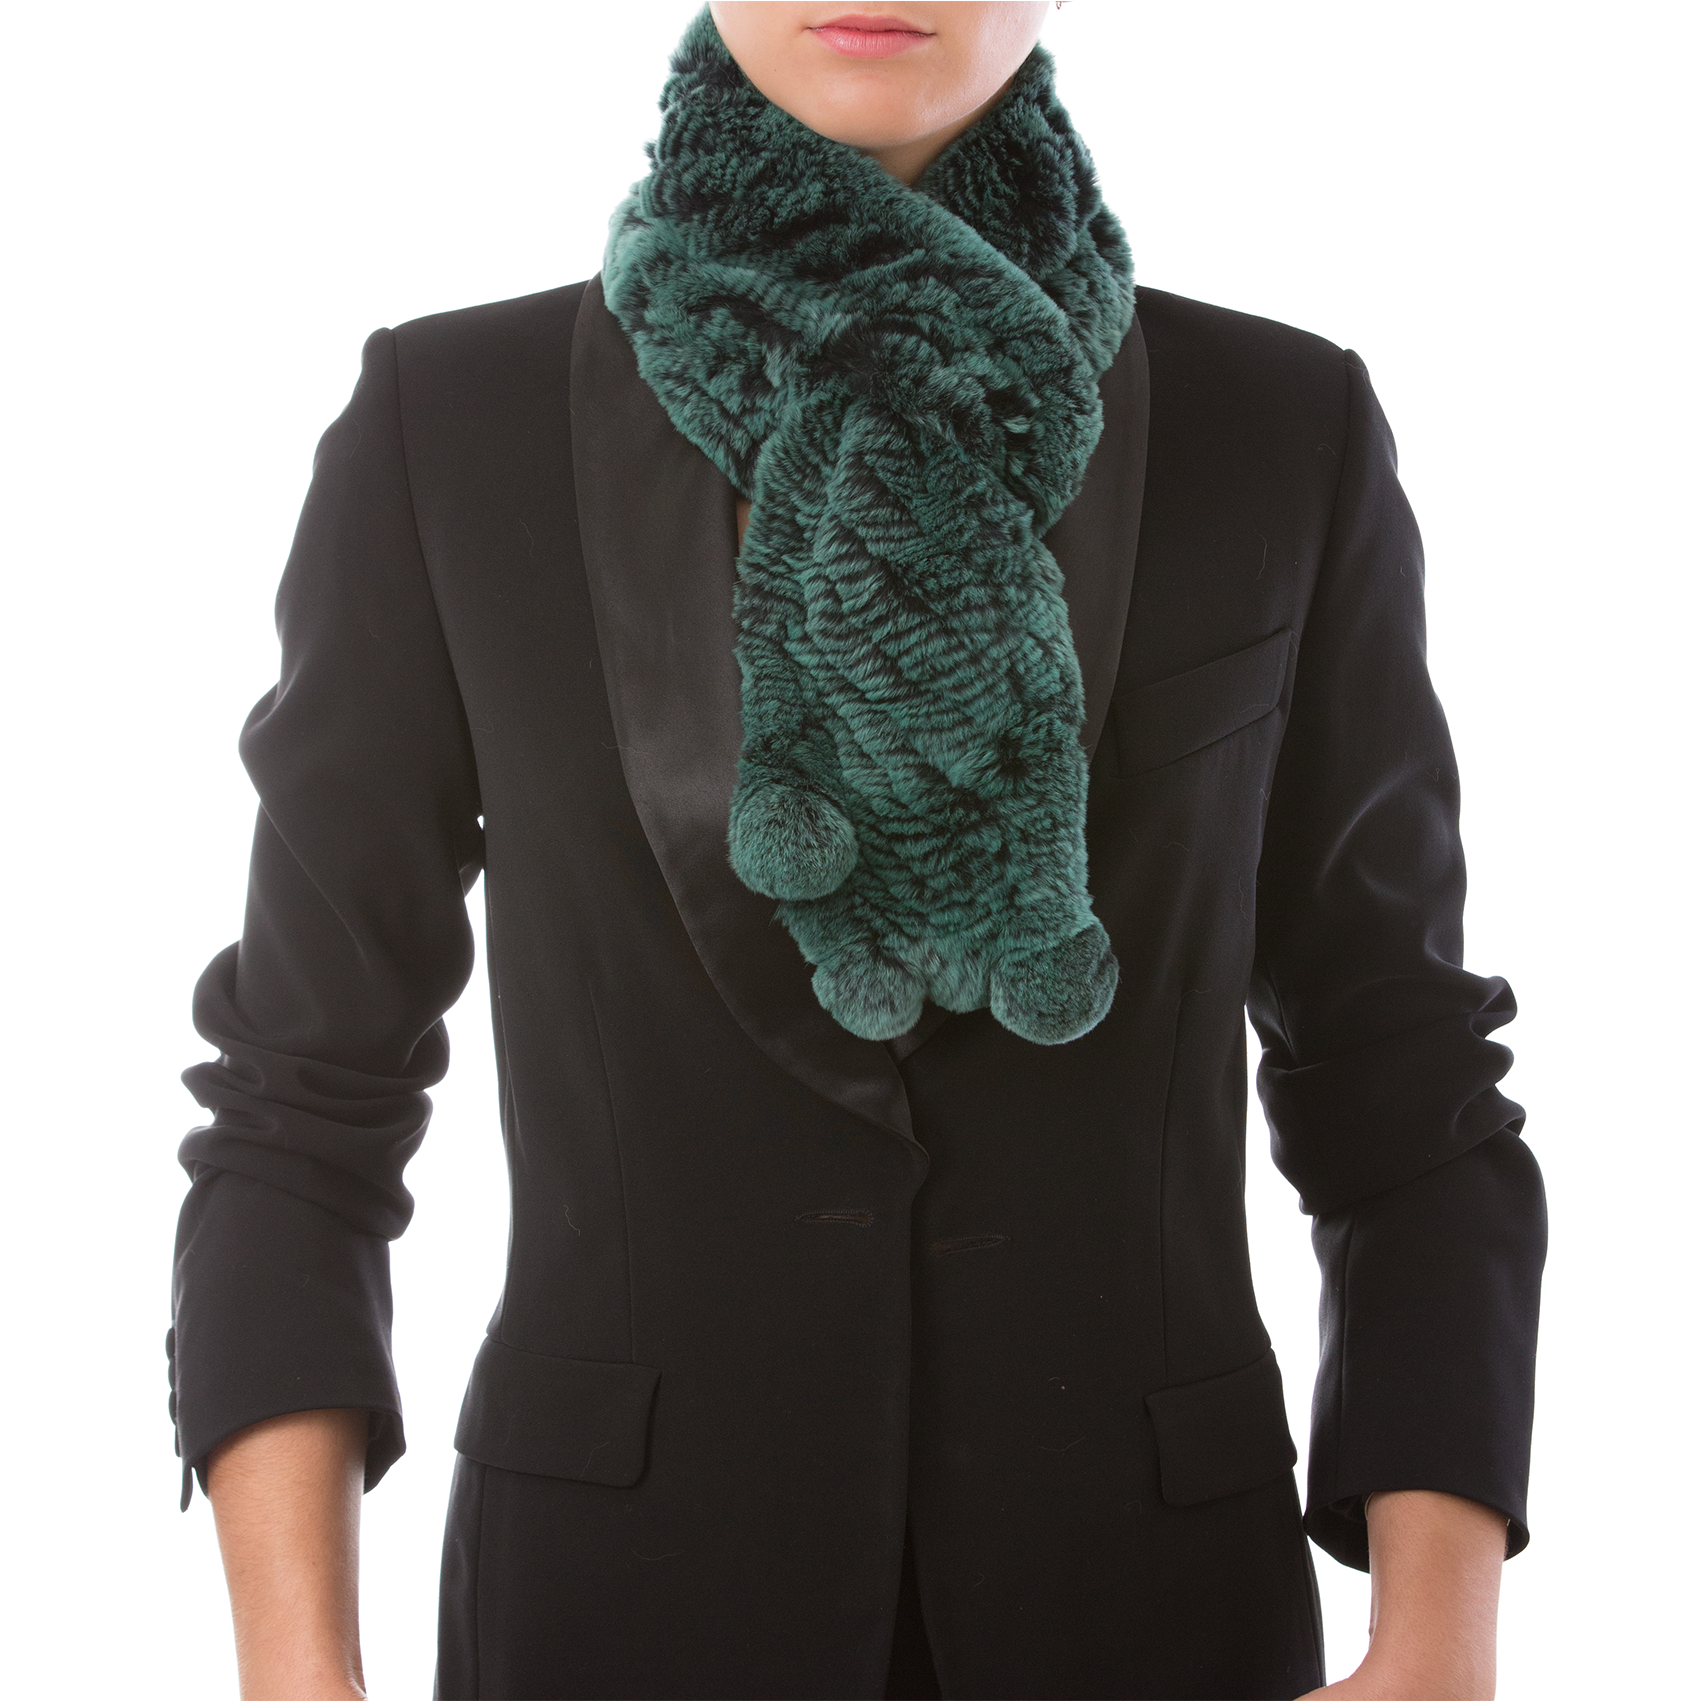 CHAMONIX green Knitted scarf